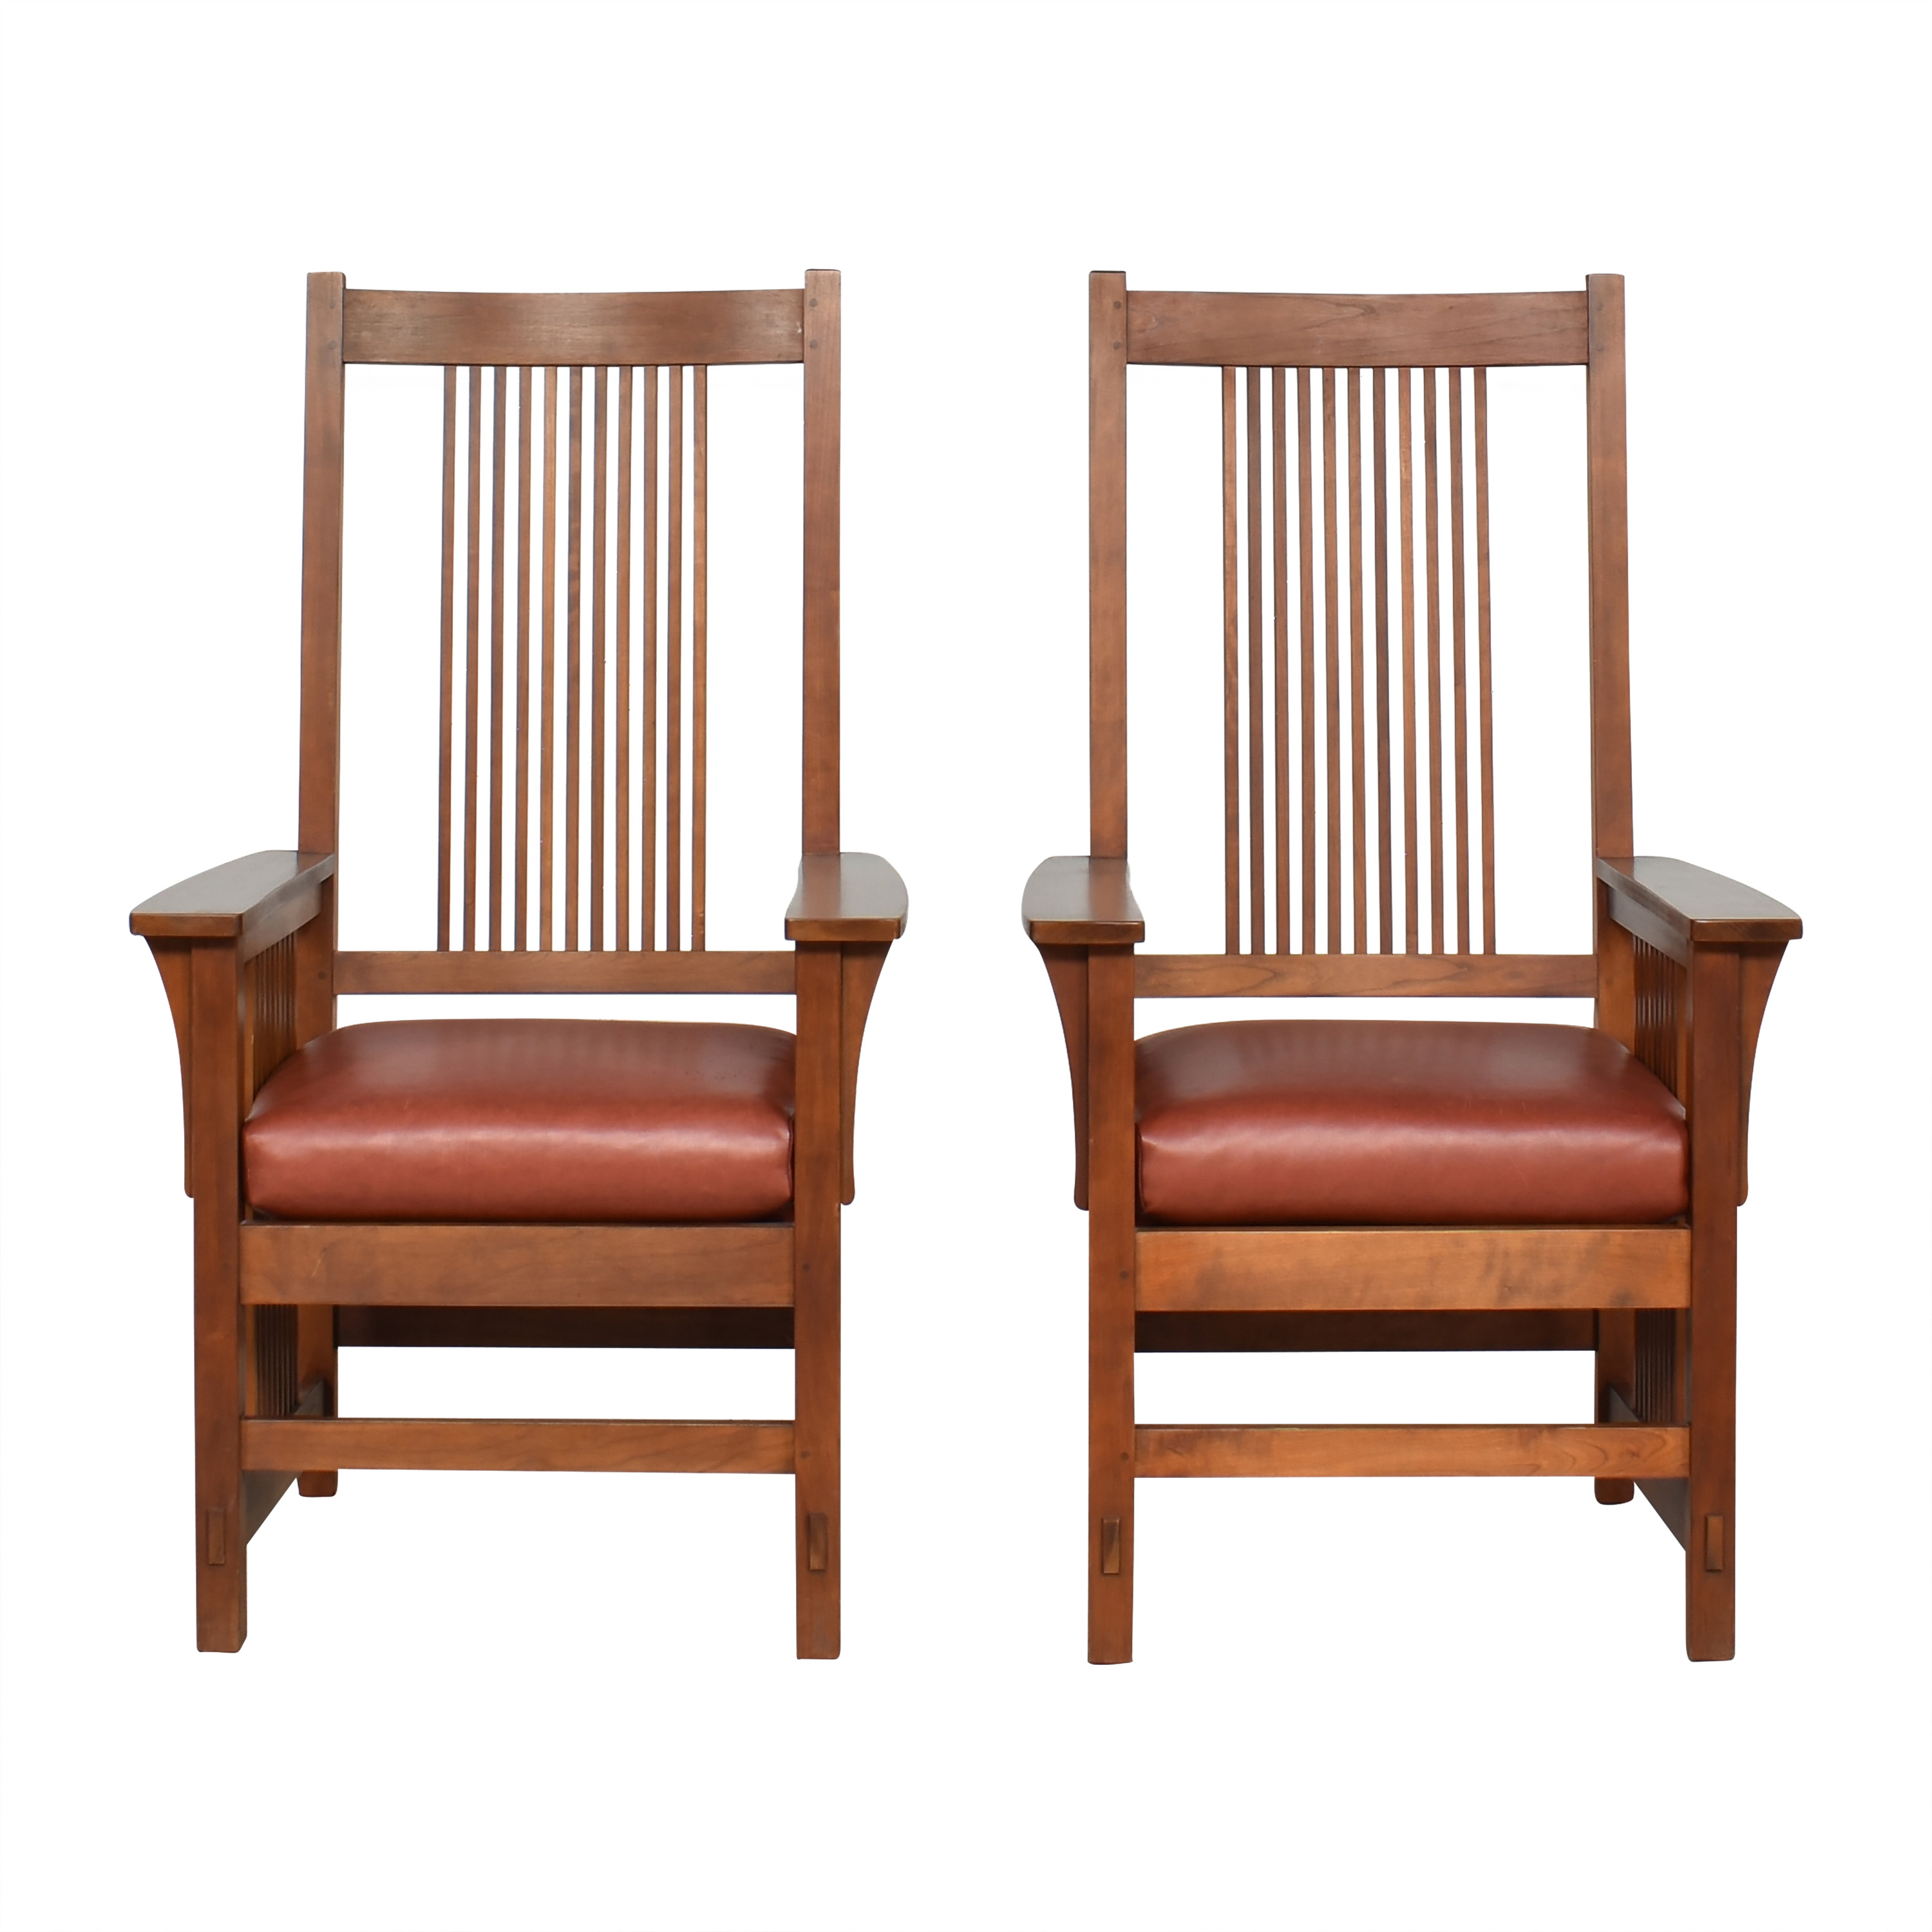 shop Stickley Spindle Dining Arm Chairs Stickley Furniture